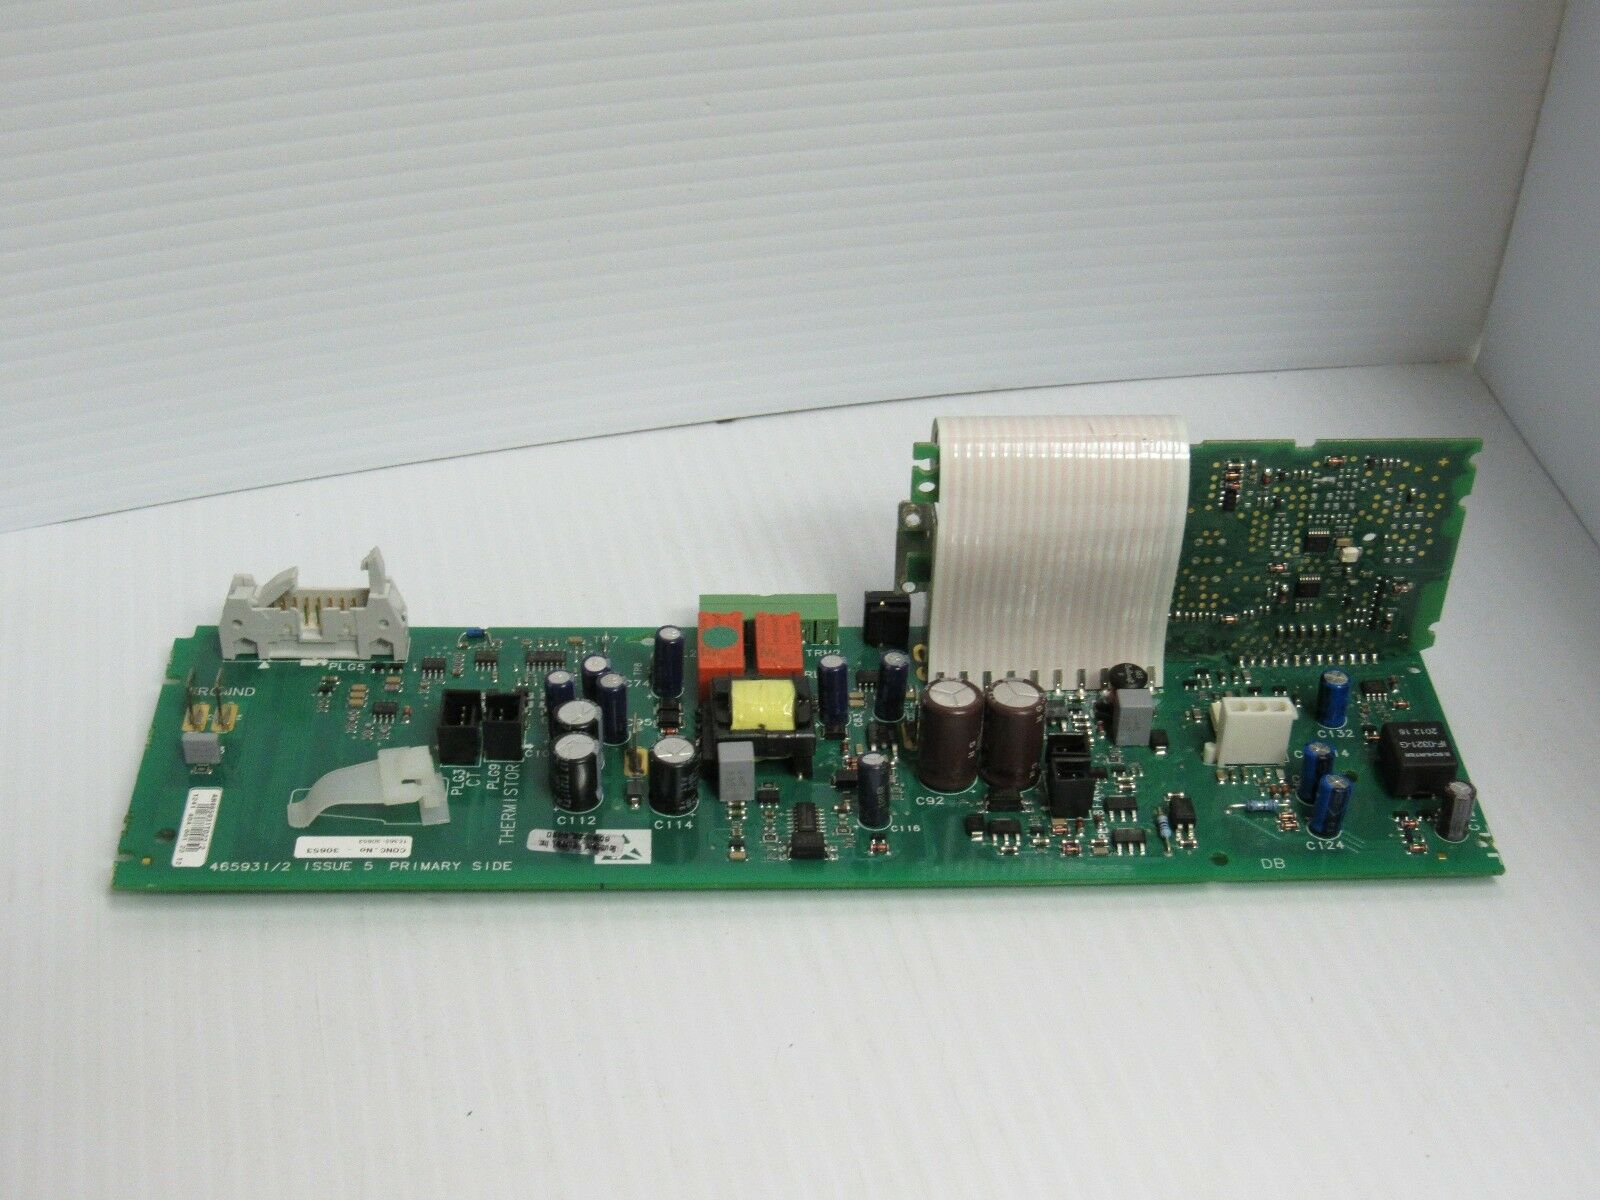 EUredHERM SSD PARKER AC DRIVE POWER SUPPLY CONTROL BOARD AH465931T022 2 465931